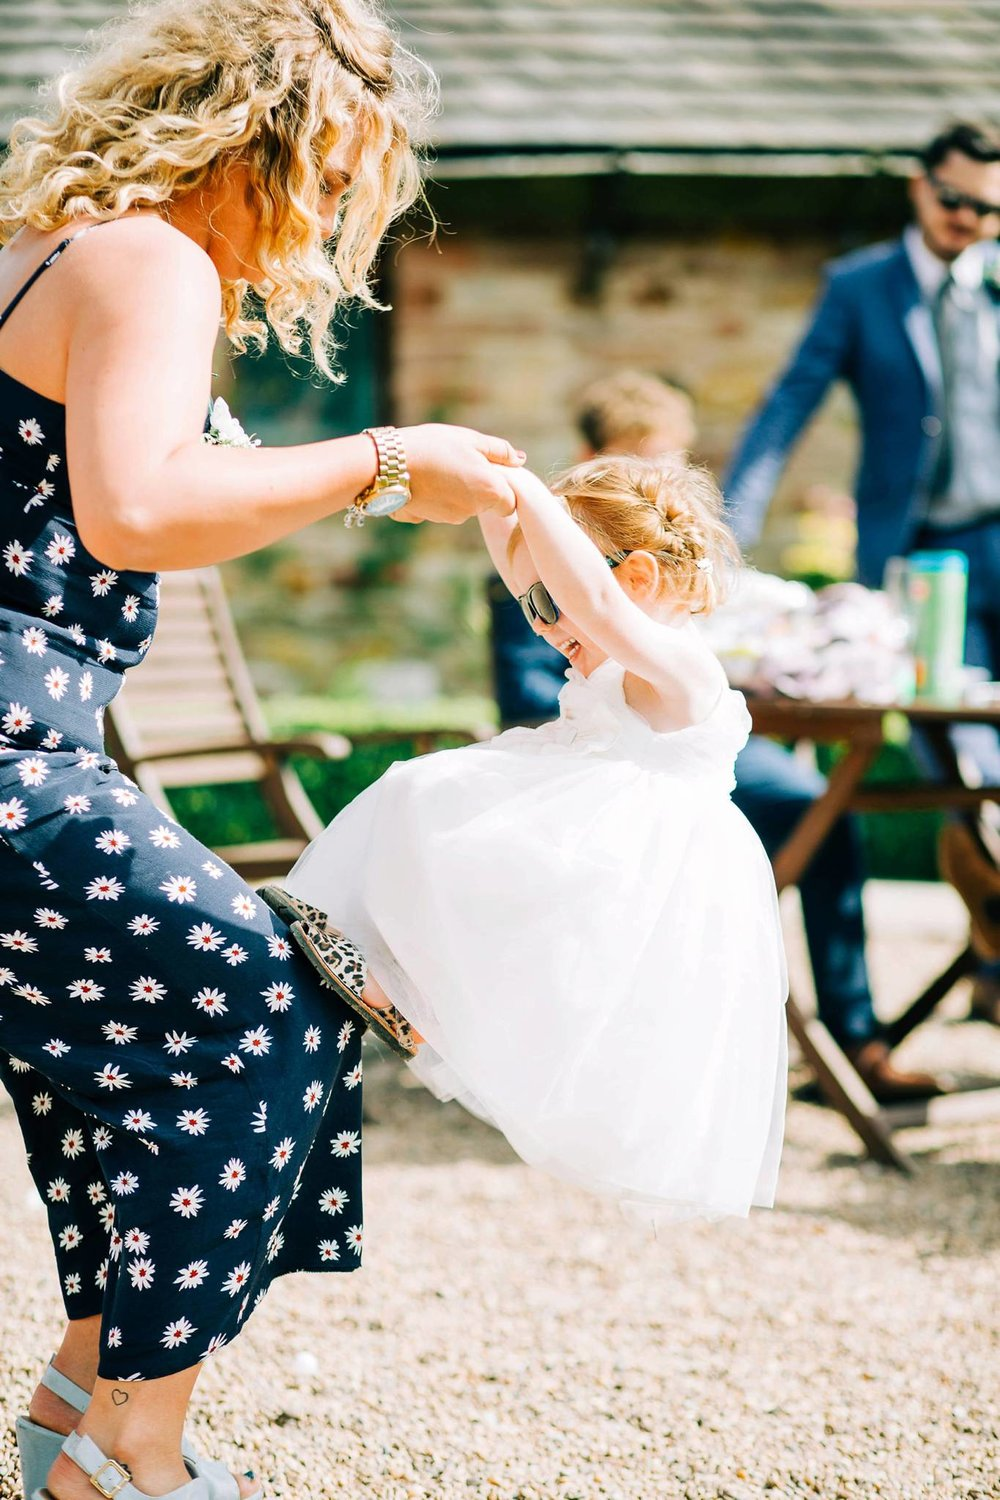 Natural wedding photography Manchester - Clare Robinson Photography_0039.jpg